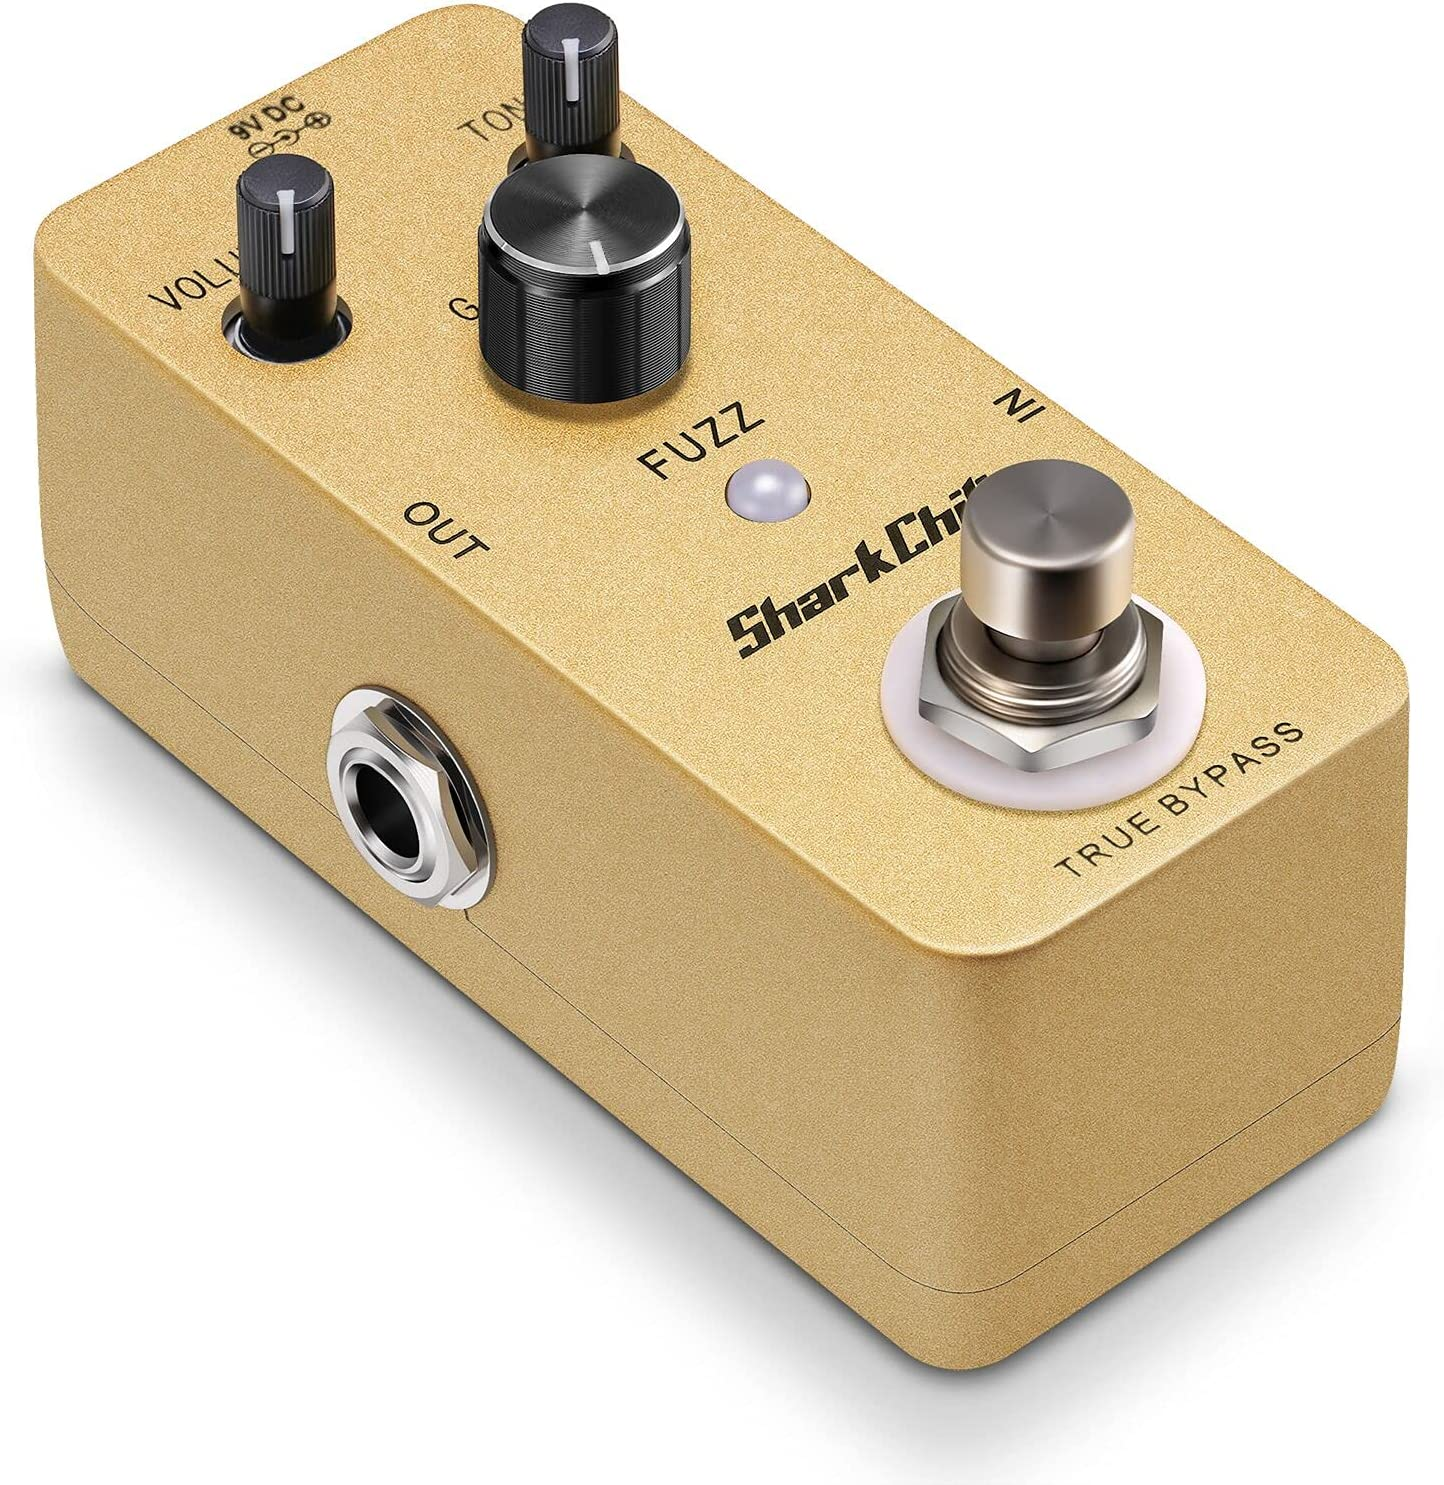 SharkChili Fuzz Single Effect True Bypass For Electric Guitar Overdrive (without power supply)